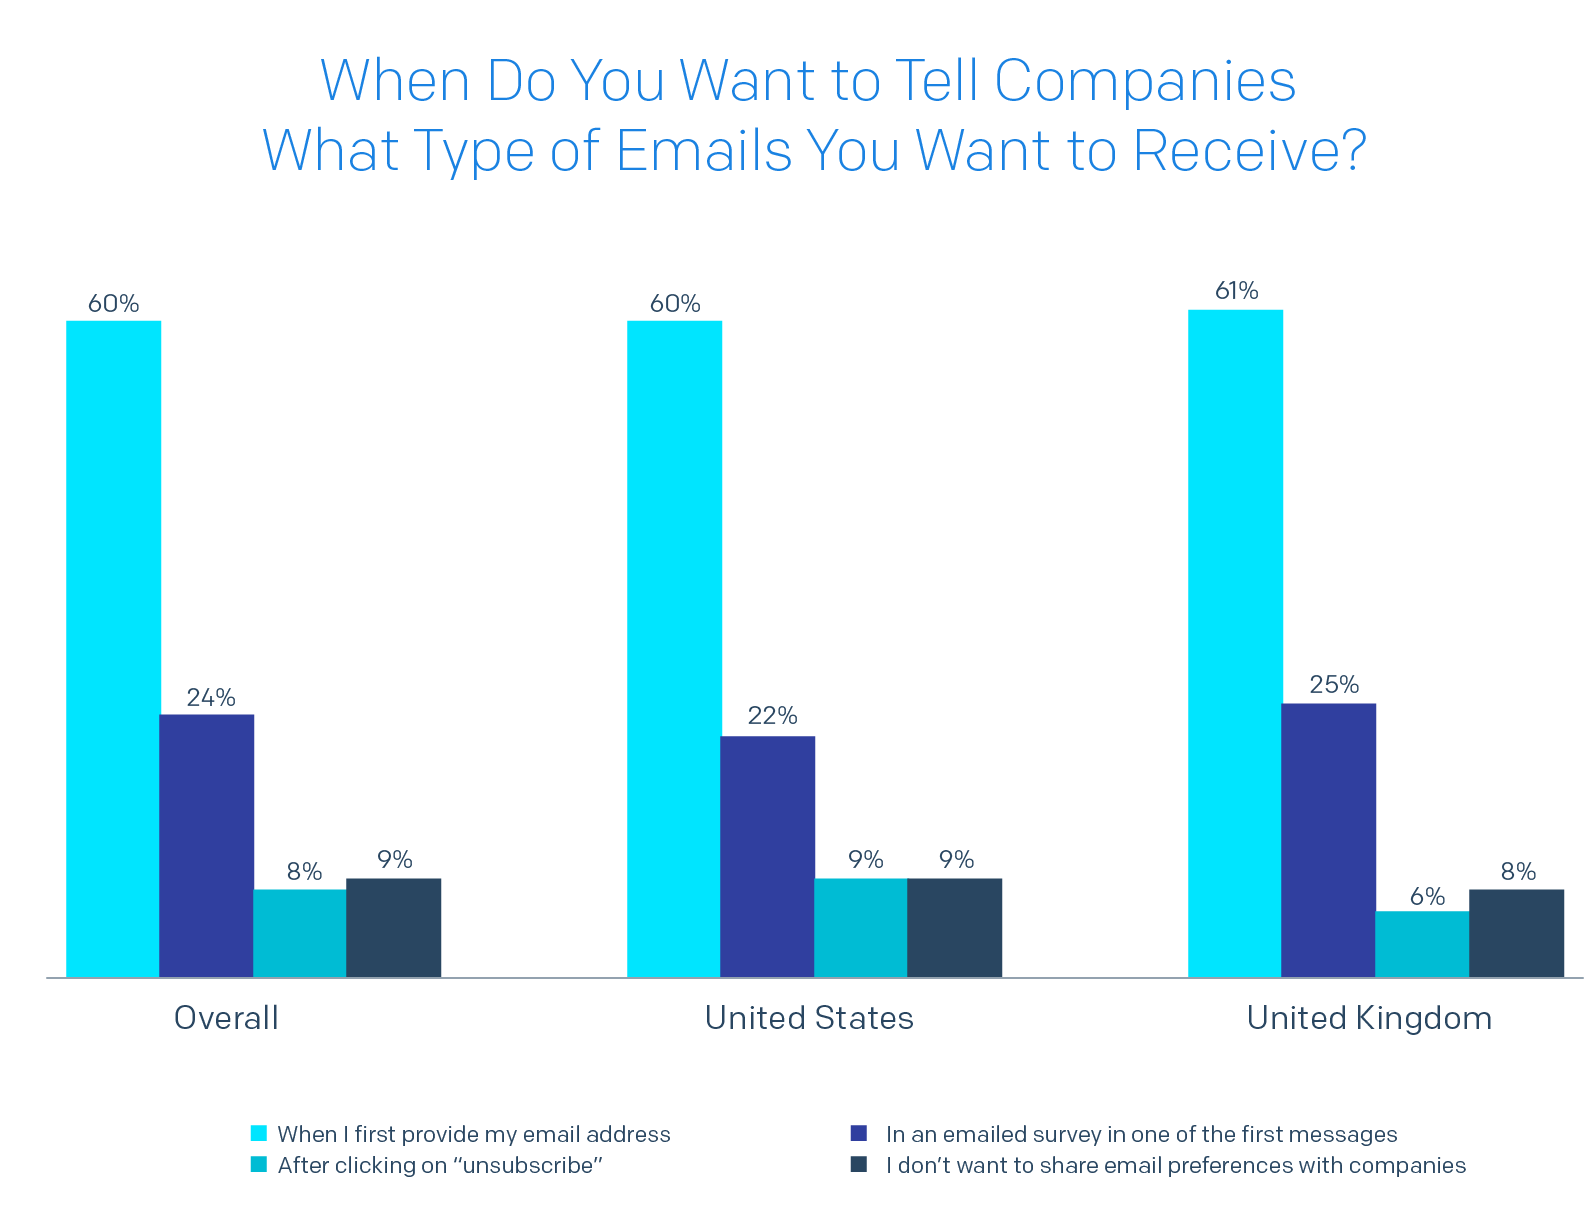 Bar chart of When do you want to tell companies what type of emails you want to receive?